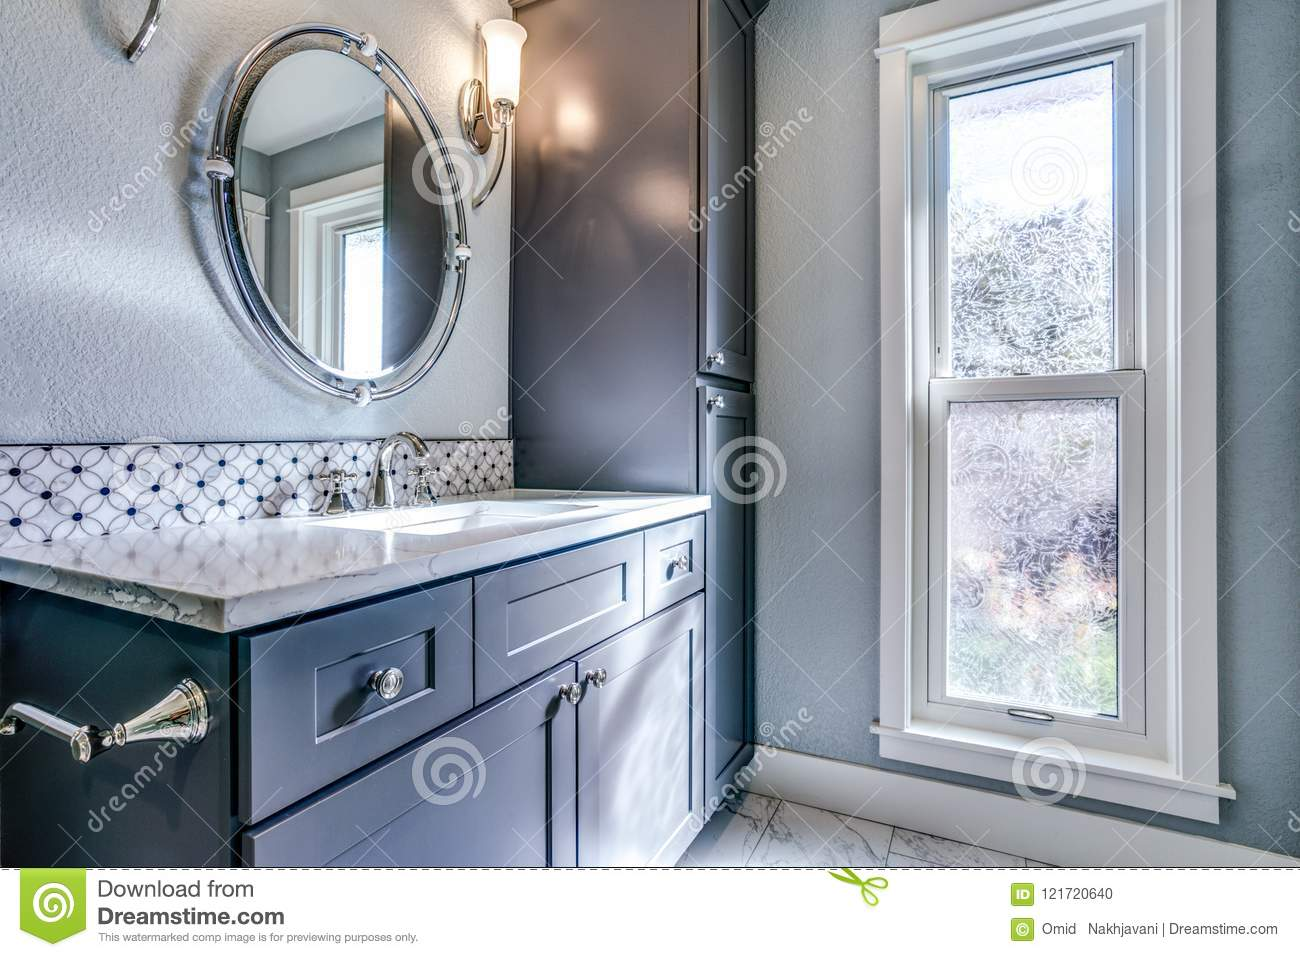 - New Blue Bathroom Design With Mosaic Accent Tiles. Stock Photo